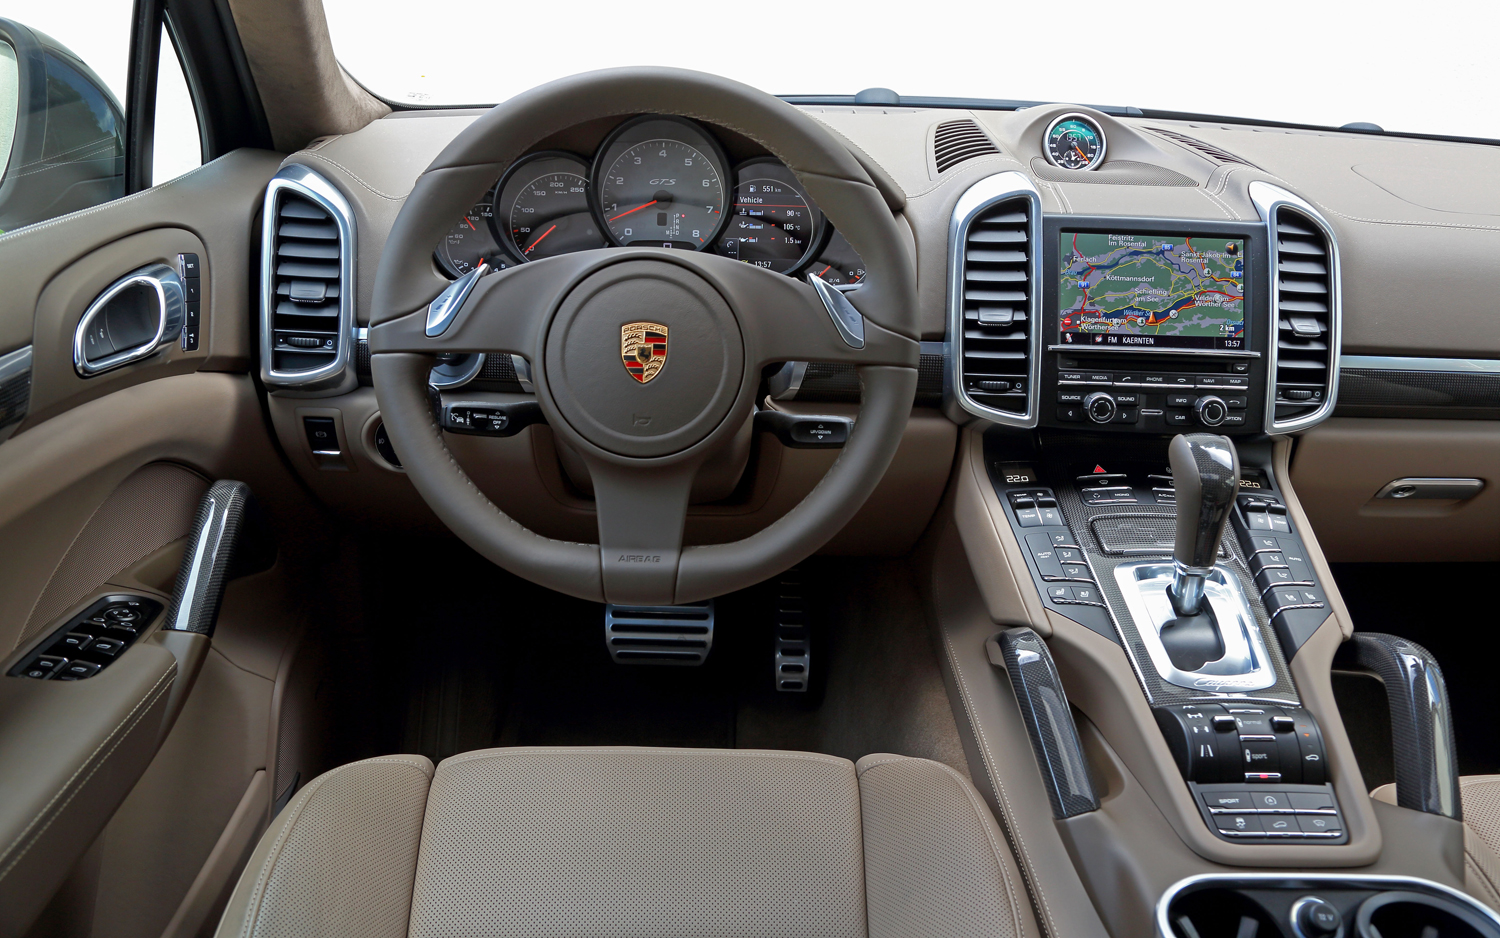 Porsche Cayenne Gts Technical Details History Photos On Better Parts Ltd